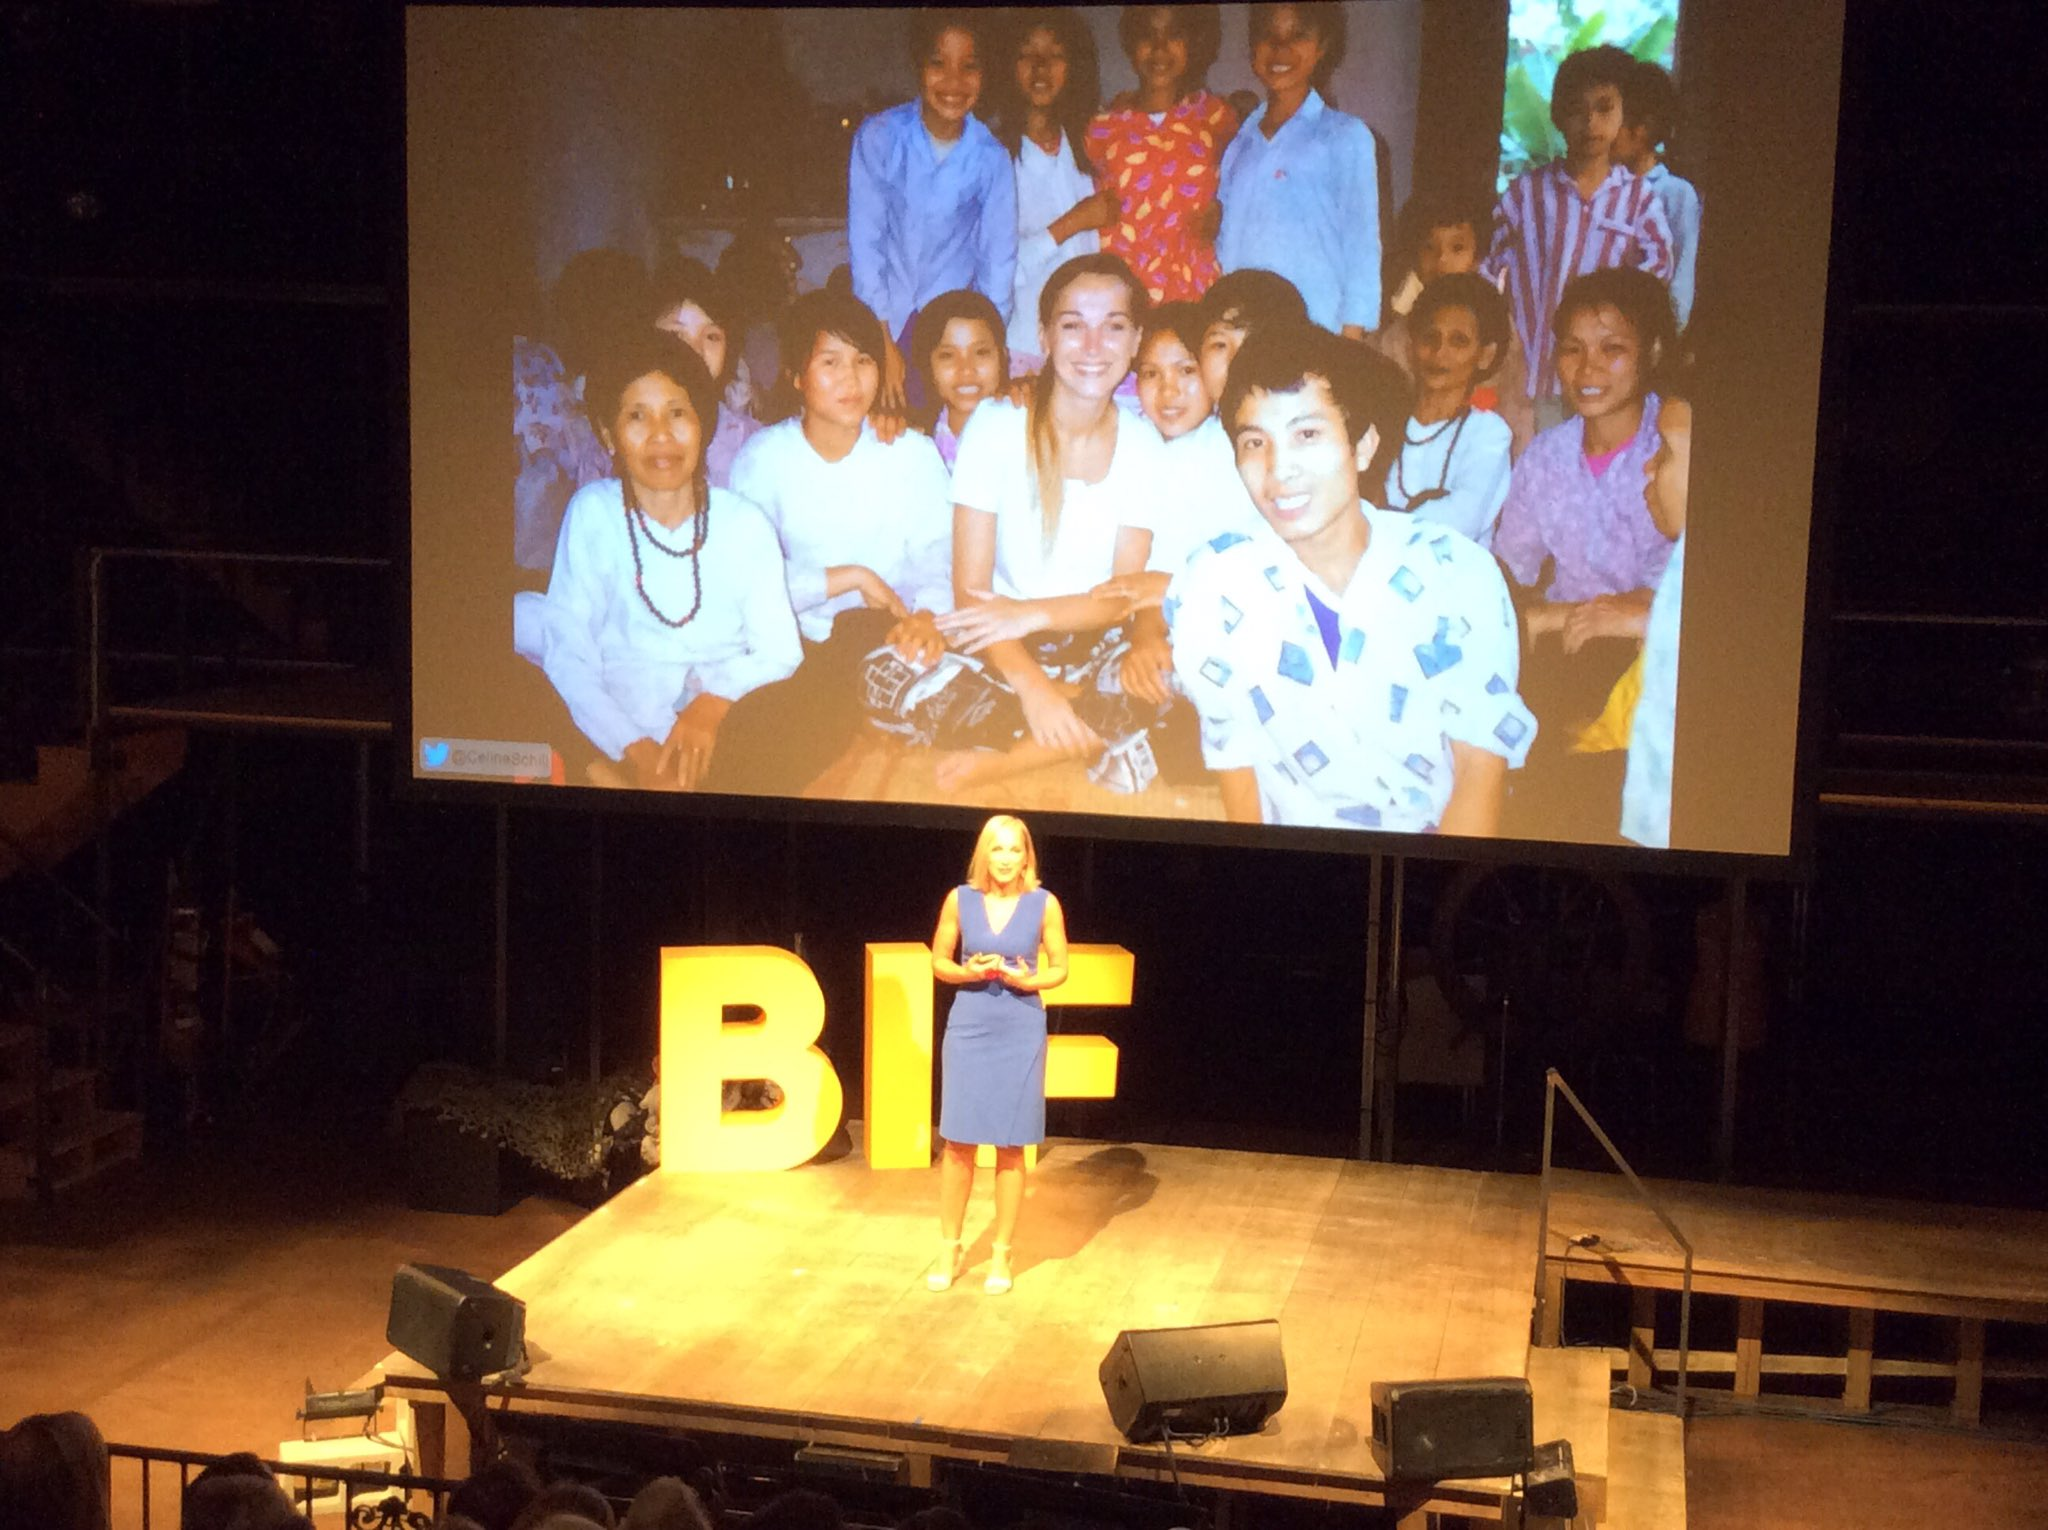 @CelineSchill The power of human connection. Onward to pharma? The plot thickens. #BIF2016 https://t.co/6cIHjIOoui